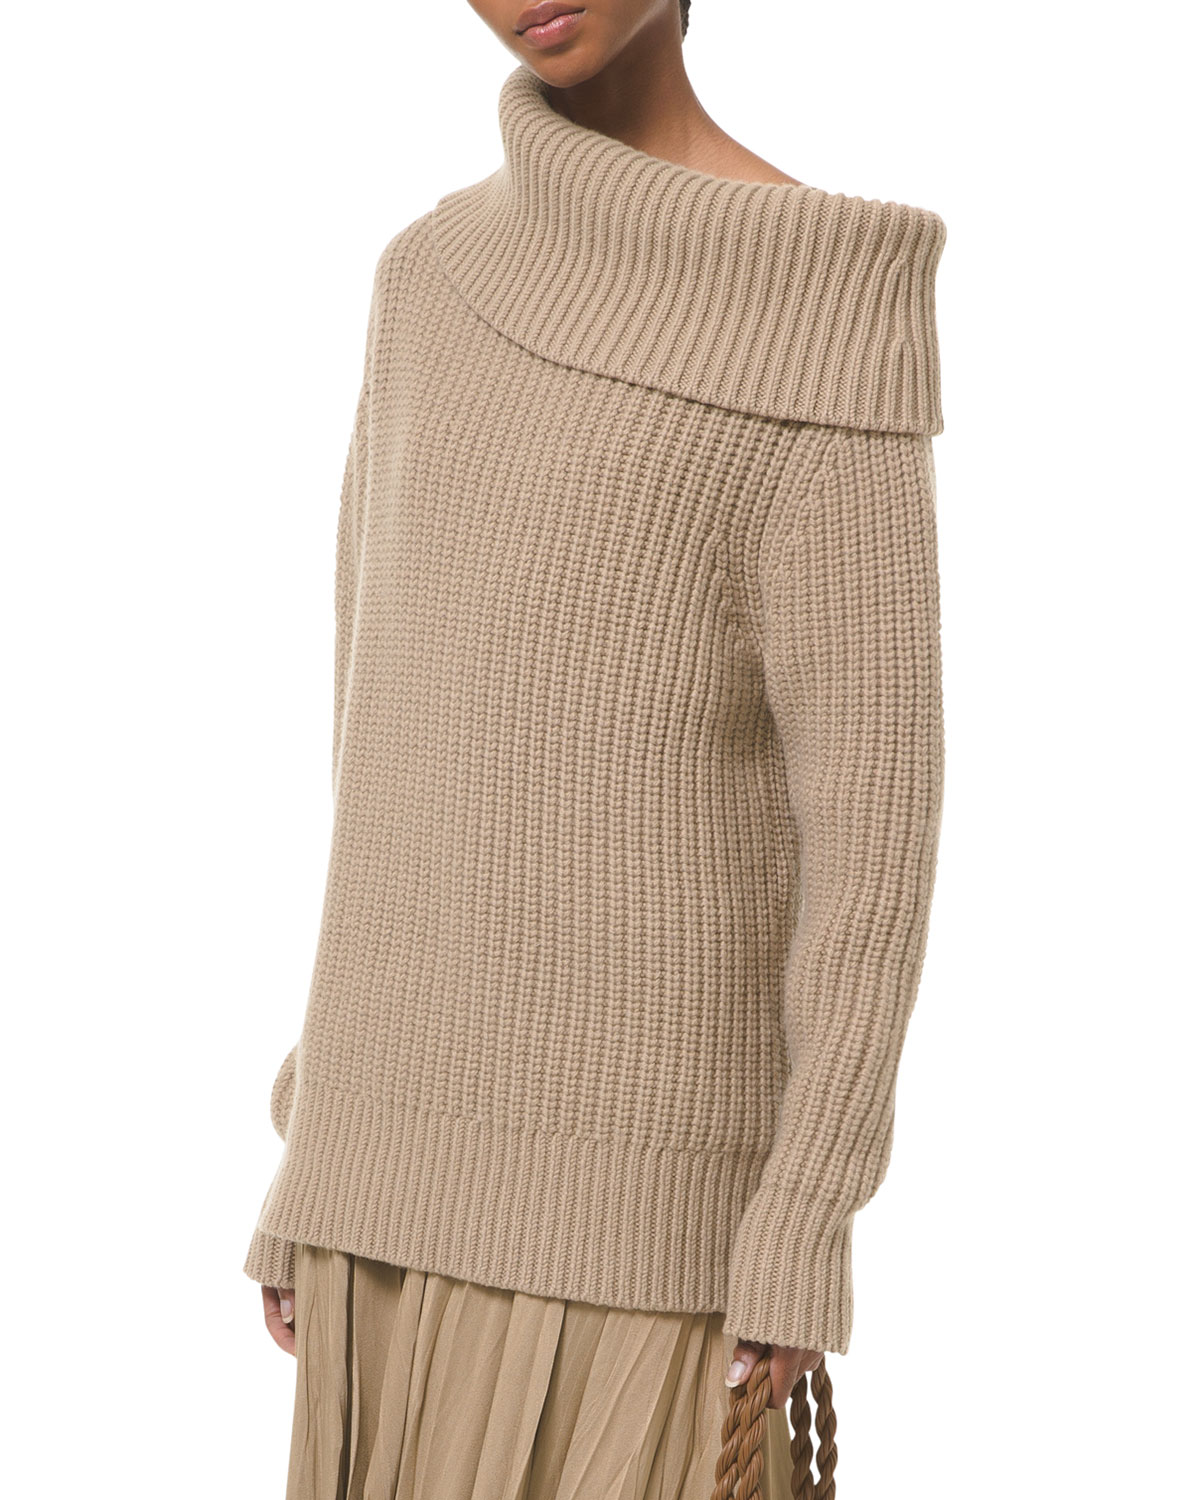 Michael Kors CUFF-NECK SHAKER CASHMERE SWEATER